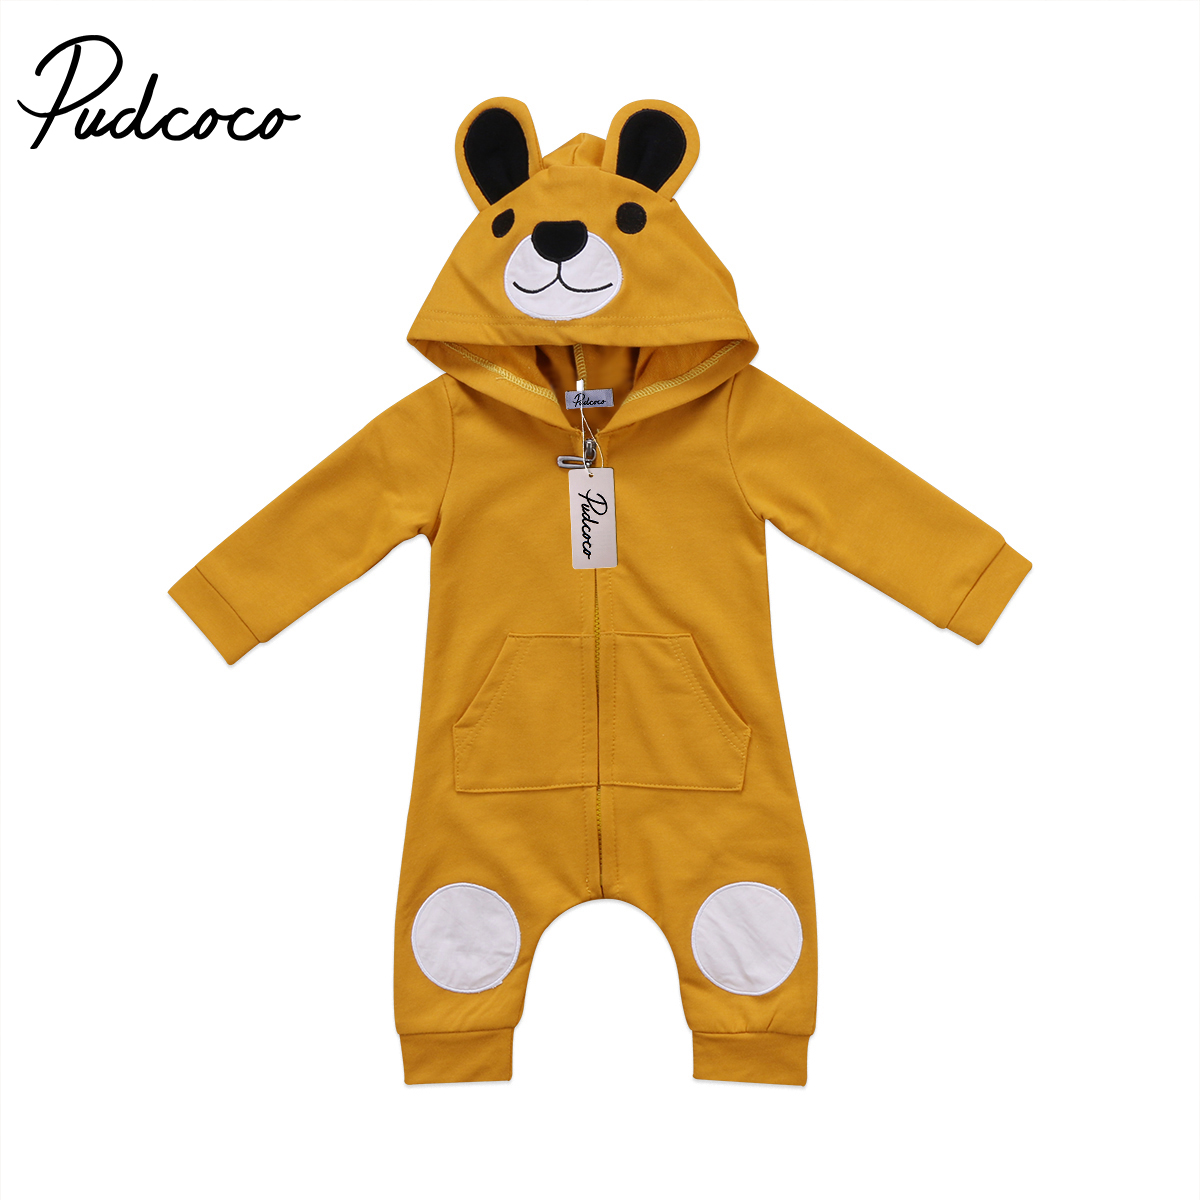 Cute Baby Clothing Newborn Kids Baby Girl Boy 3D Ear Long sleeve Romper Jumpsuit Playsuit Clothes Outfits 0-24M